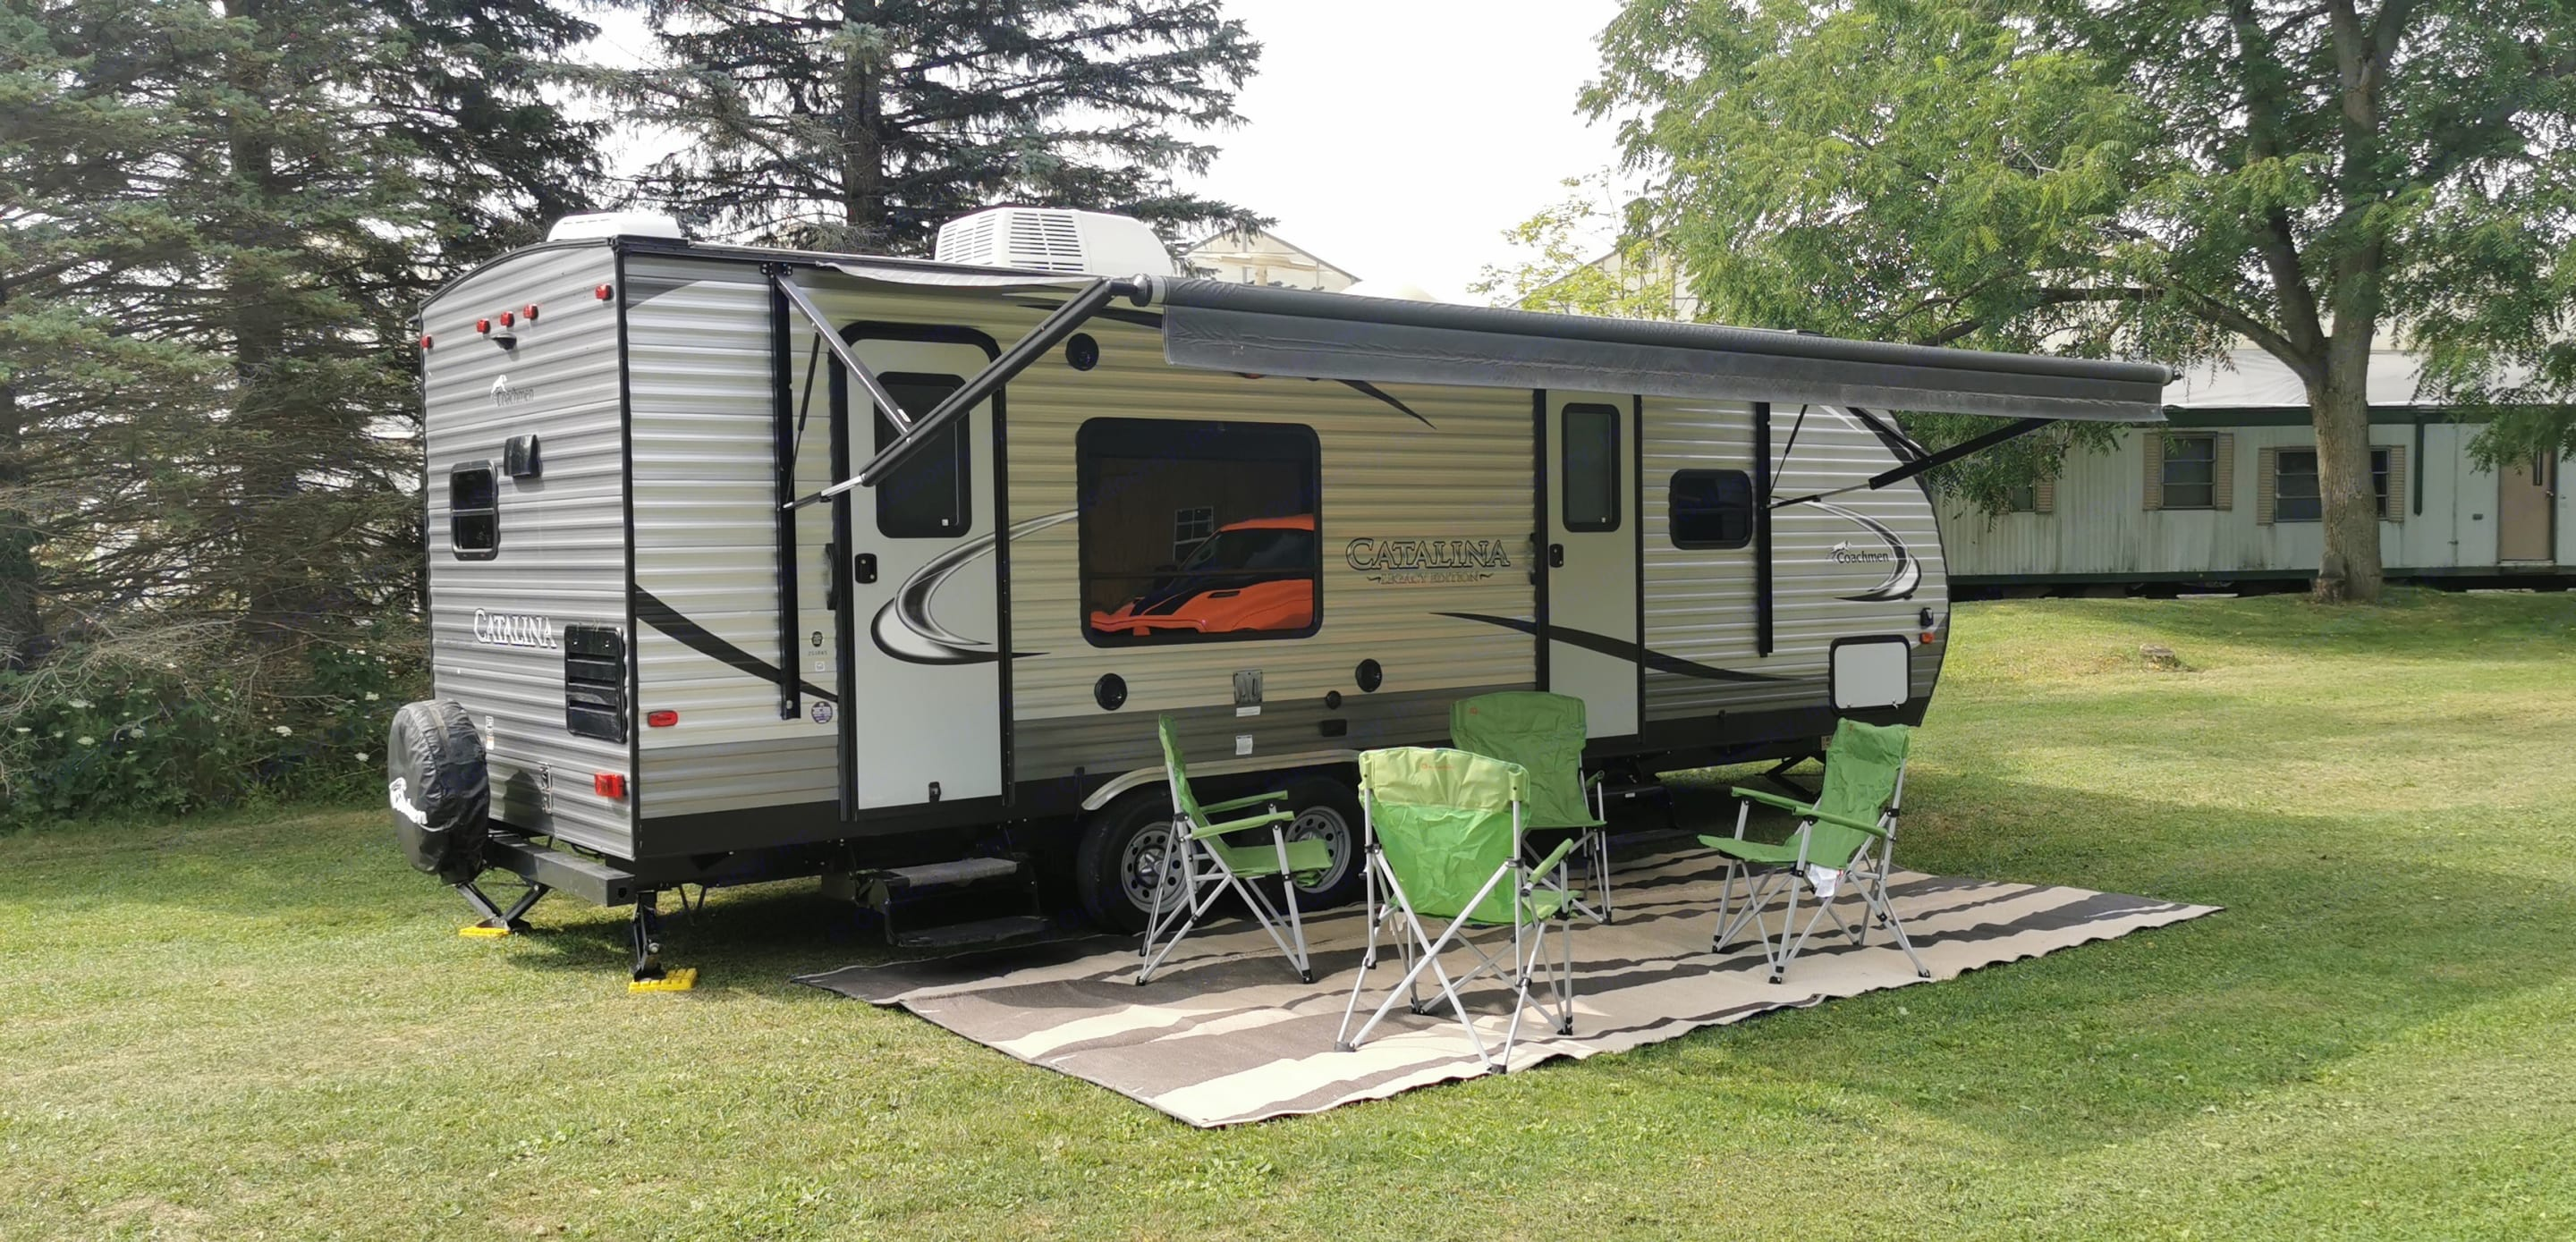 Large awning to cover seating area with 4 included lawn chairs and ground cover.. Coachmen Catalina 2016